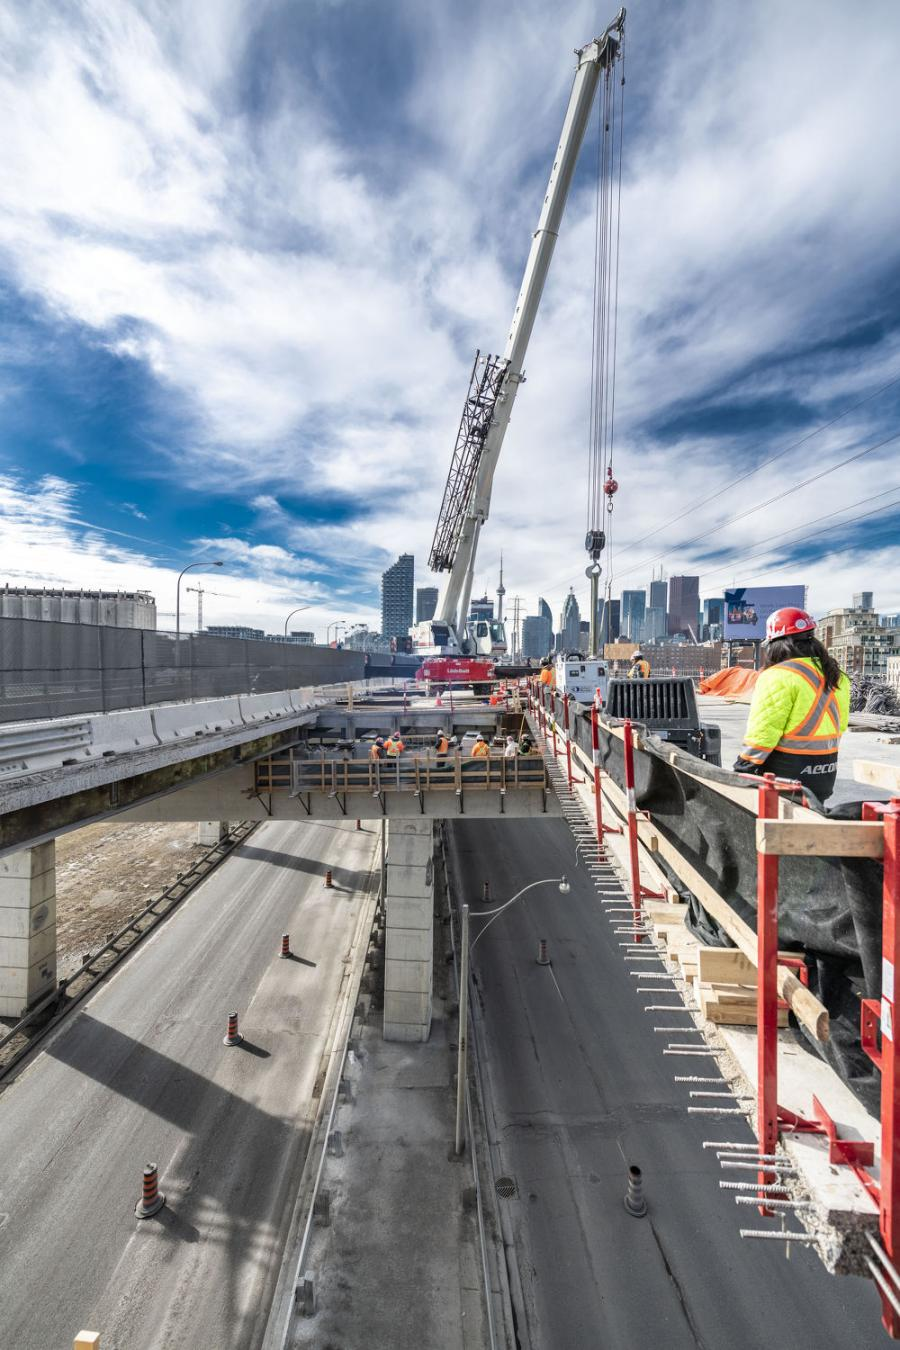 Initial construction of Phase 1 includes westbound lanes and ramps, requiring two open lanes in each direction for commuter traffic.